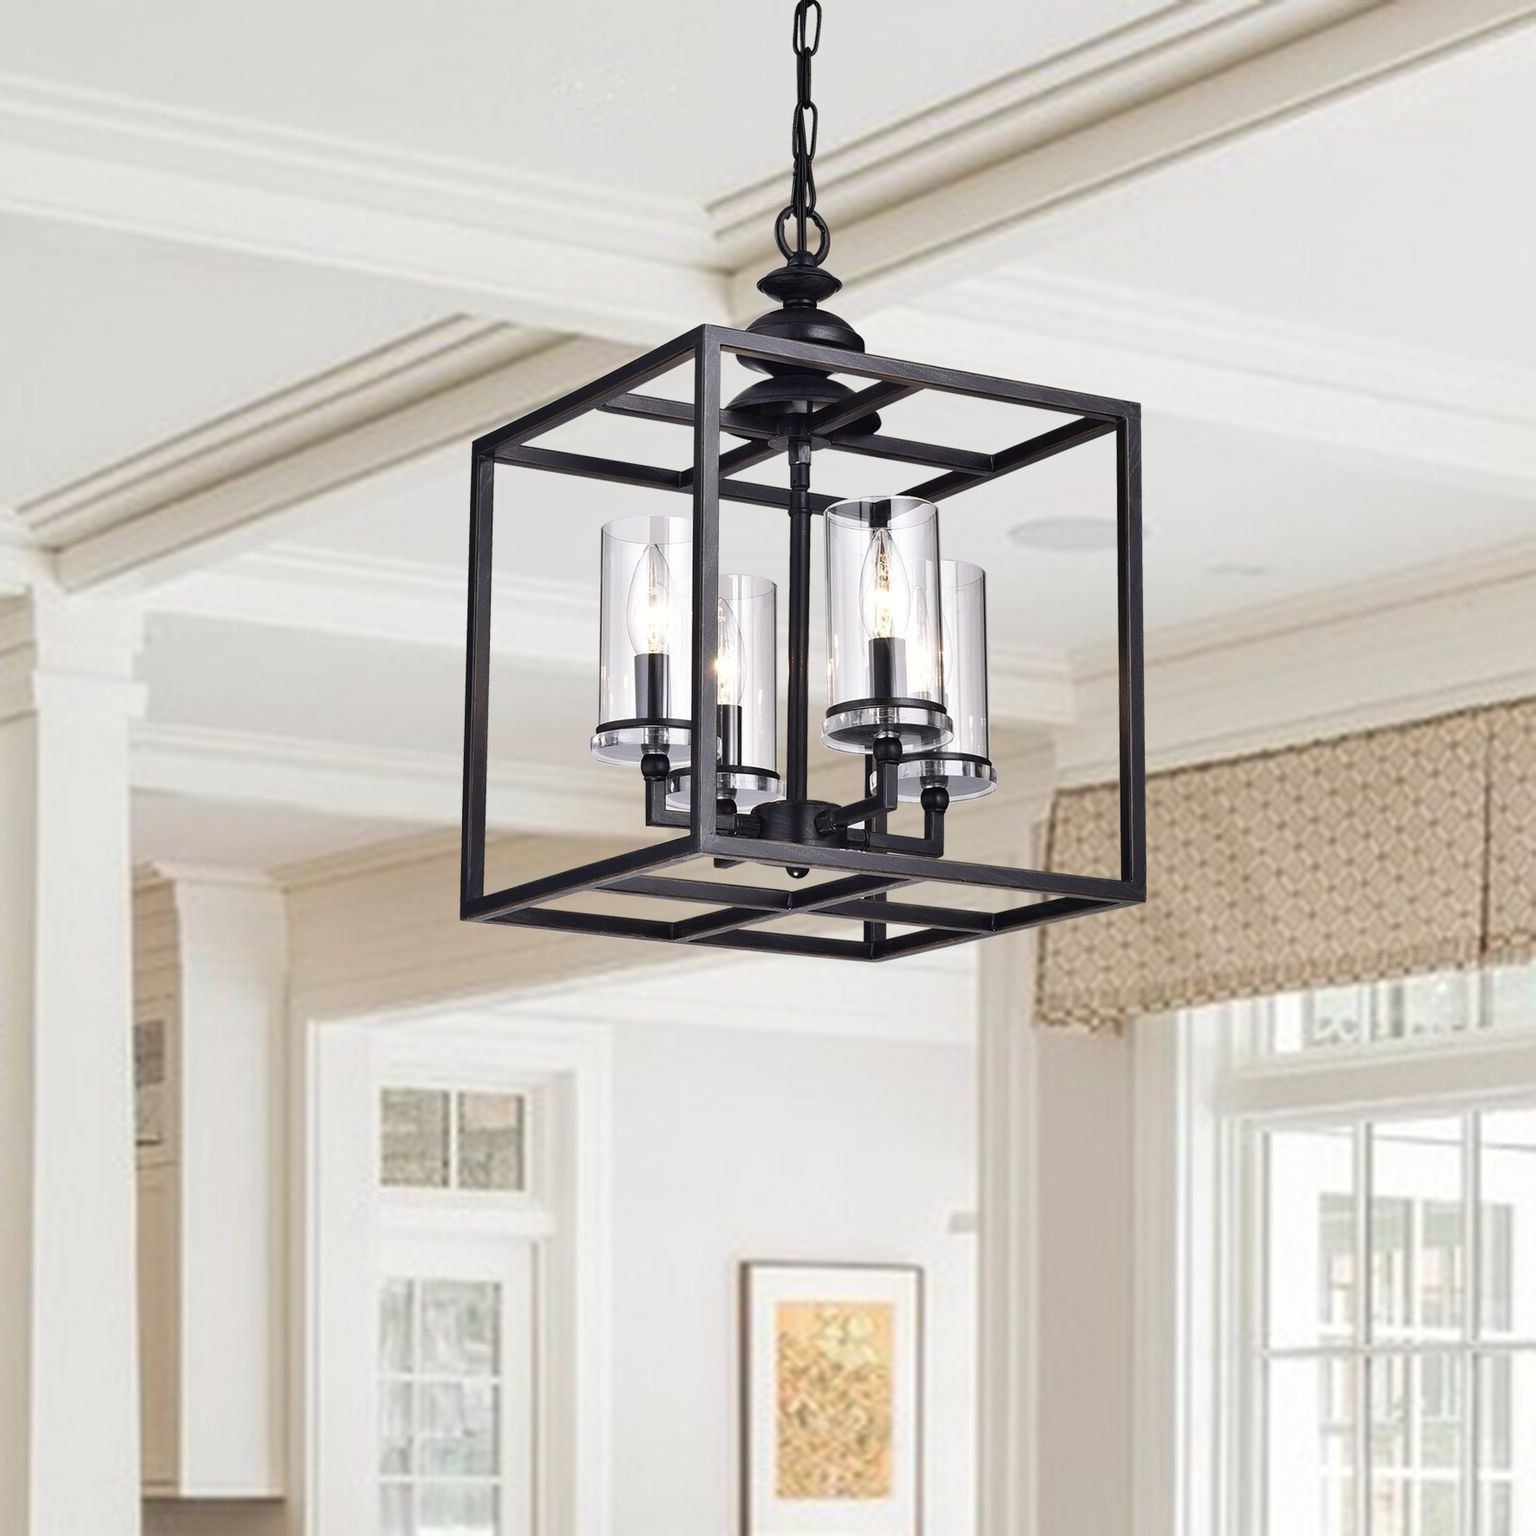 Cheverton 4 Light Square/rectangle Chandelier Throughout Most Popular Delon 4 Light Square Chandeliers (View 3 of 20)